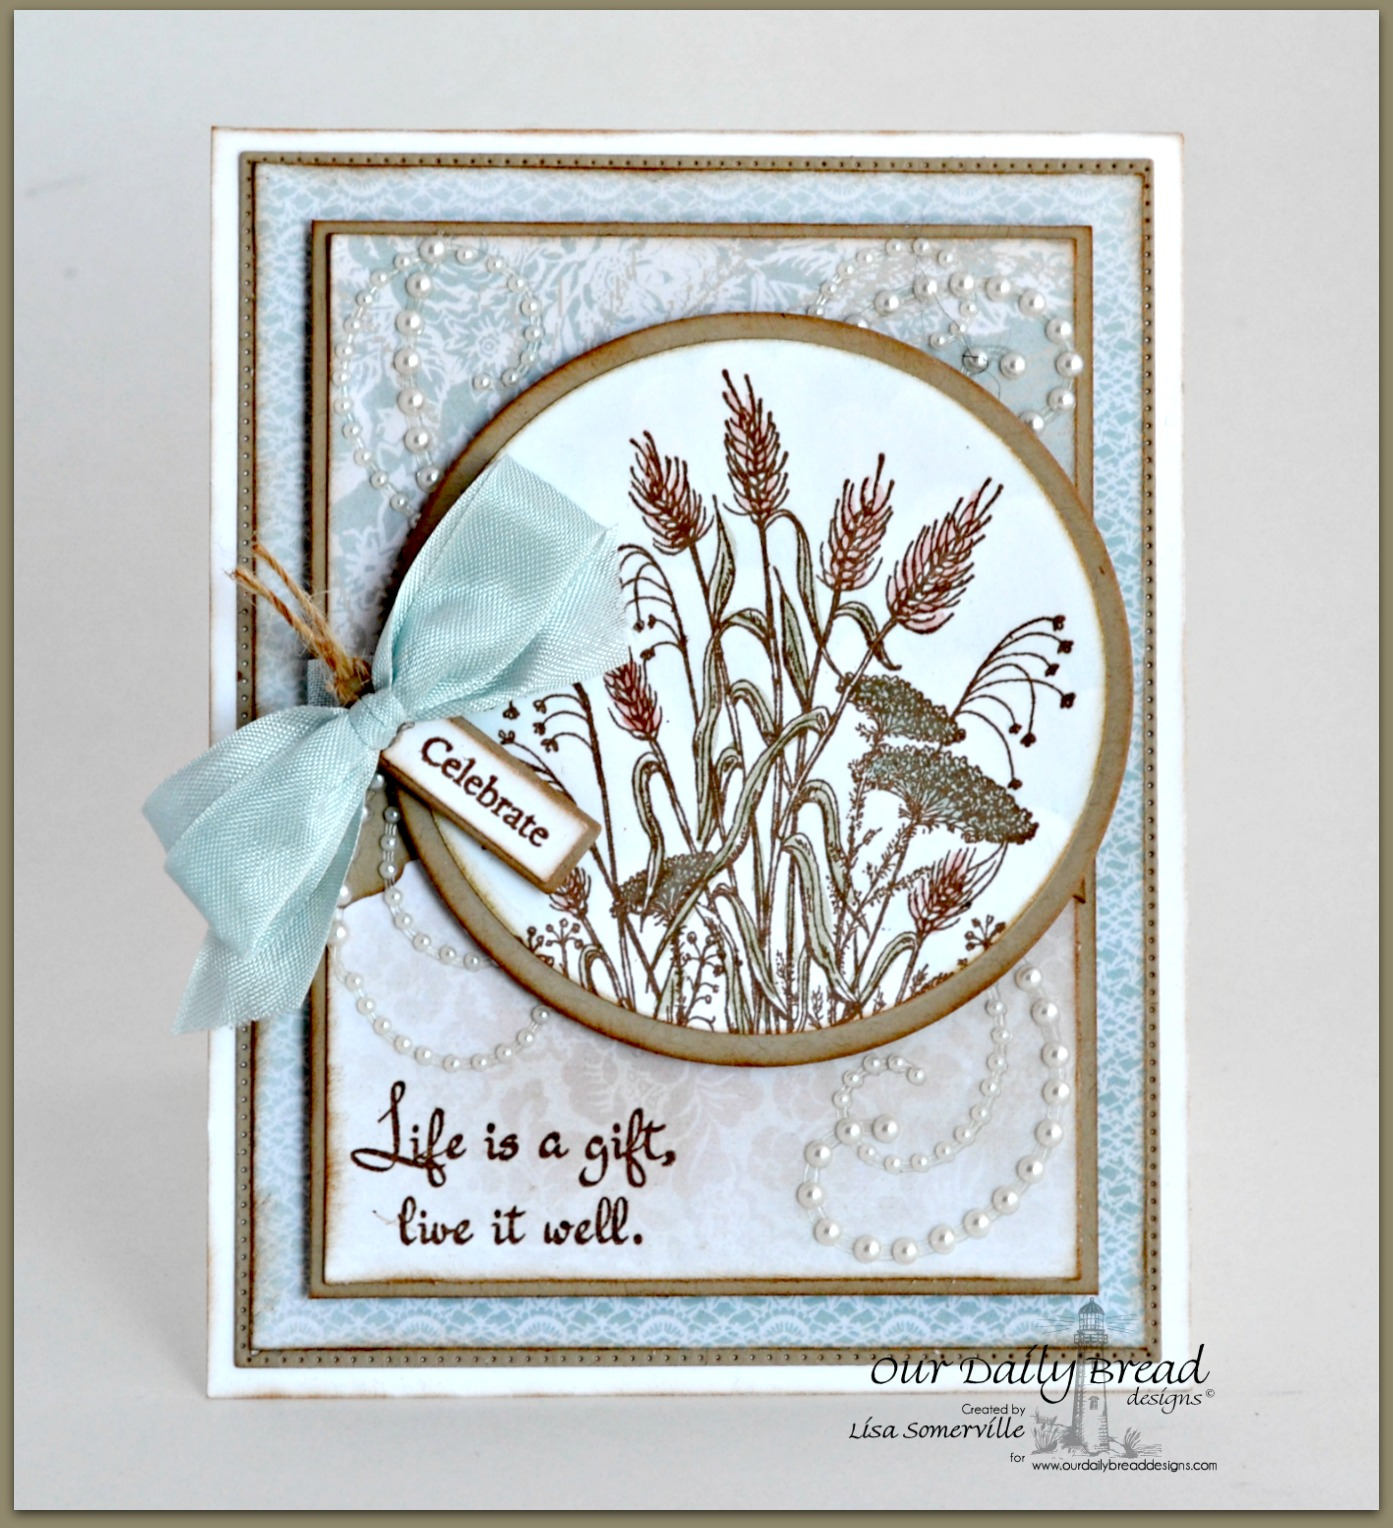 Stamps - Our Daily Bread Designs Life is a Gift, Mini Tag Sentiments, ODBD Custom Beautiful Borders Dies, ODBD Custom Mini Tags Dies, ODBD Custom Circle Ornaments Dies, ODBD Custom Matting Circles Dies, ODBD Shabby Rose Paper Collection, ODBD Custom Flourished Star Pattern Die